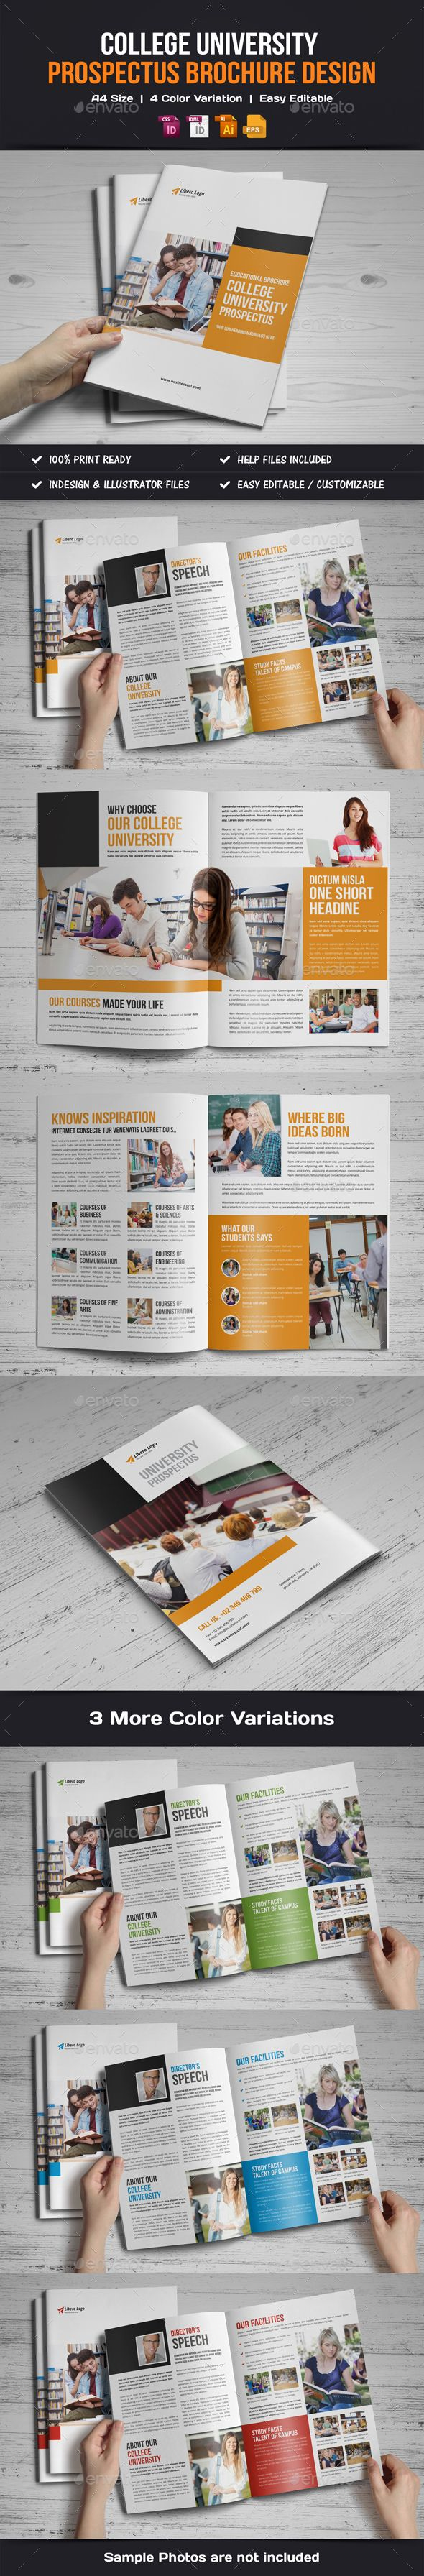 College University Prospectus Brochure Template Vector EPS, InDesign INDD, AI Illustrator. Download here: http://graphicriver.net/item/college-university-prospectus-brochure-v1/16387024?ref=ksioks